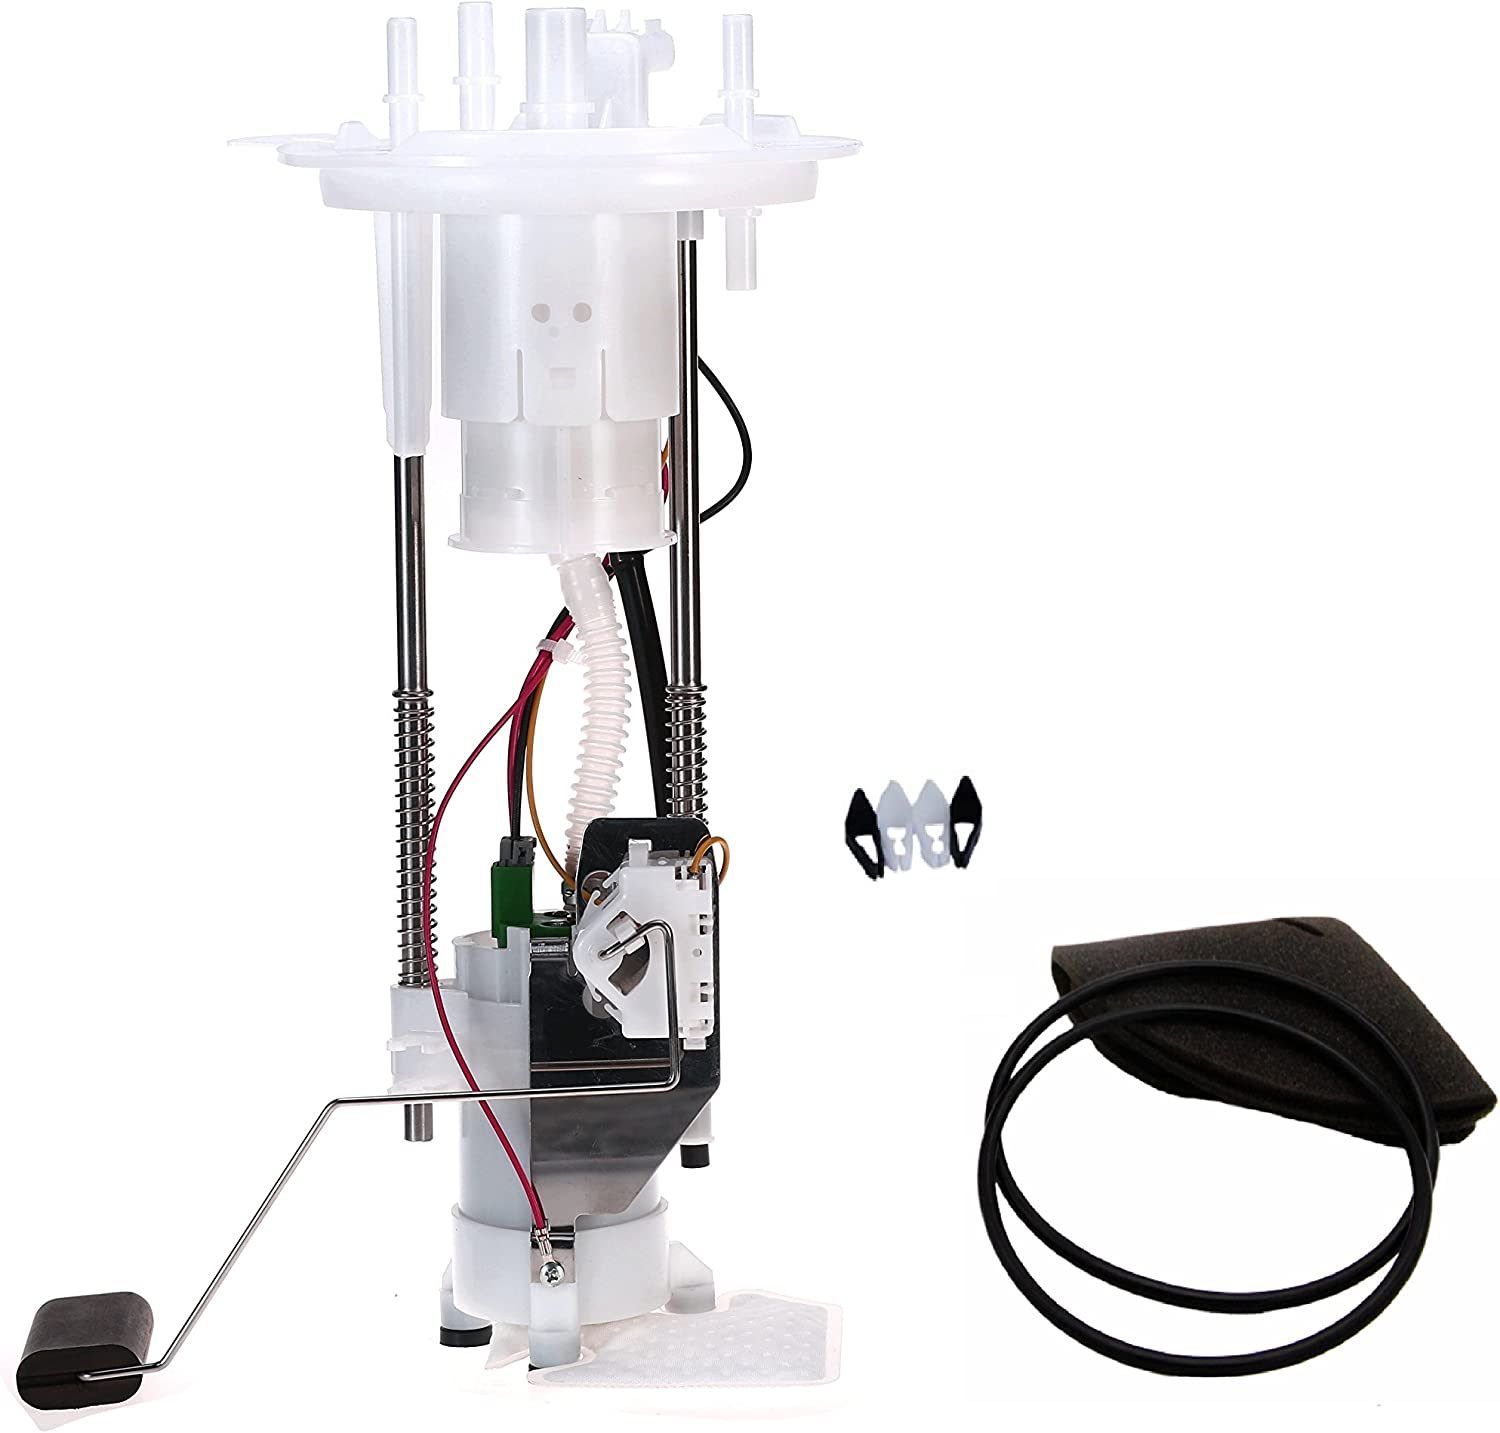 Fuel Pump Module Assemby or Stainer Fits 2004-2008 Ford F-150 Lincoln Mark LT